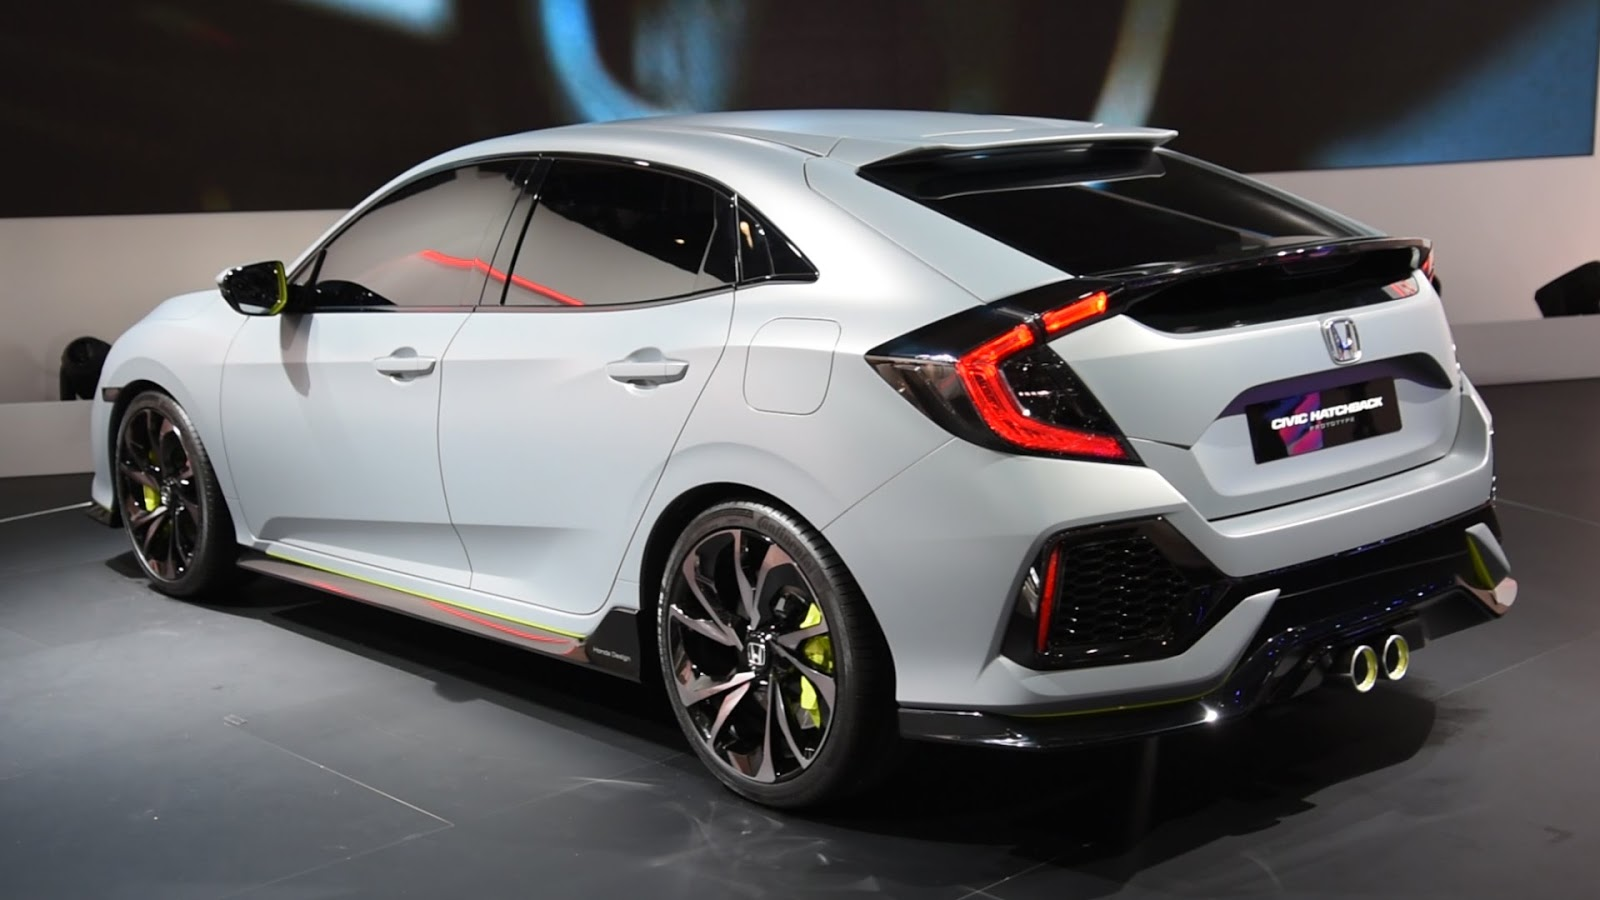 2016 honda civic hatchback trend car gallery for Honda 2016 models